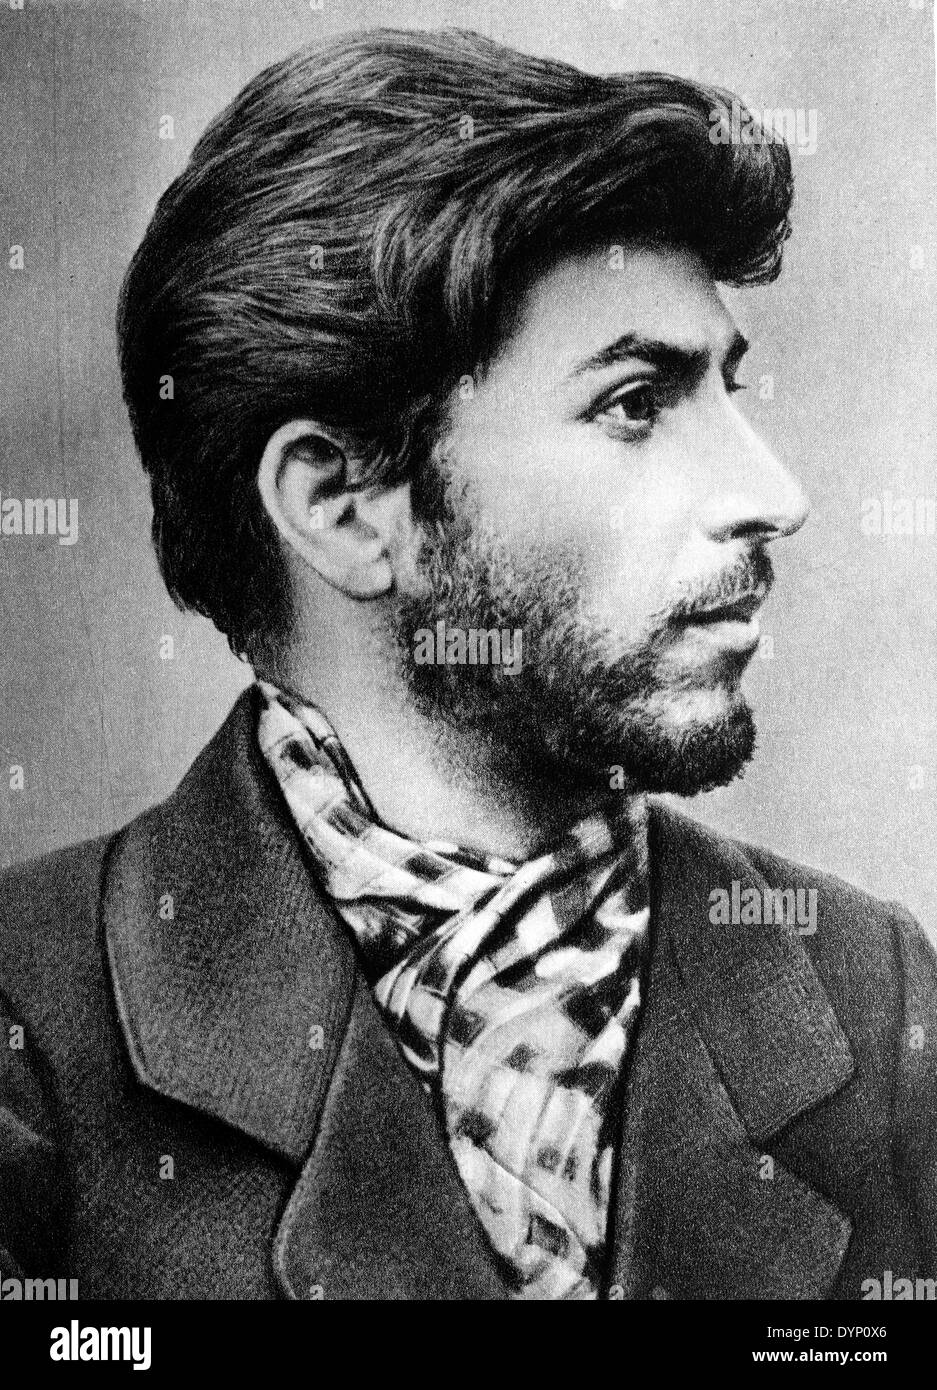 Joseph Stalin 1878 1953 Leader Of The Soviet Union In